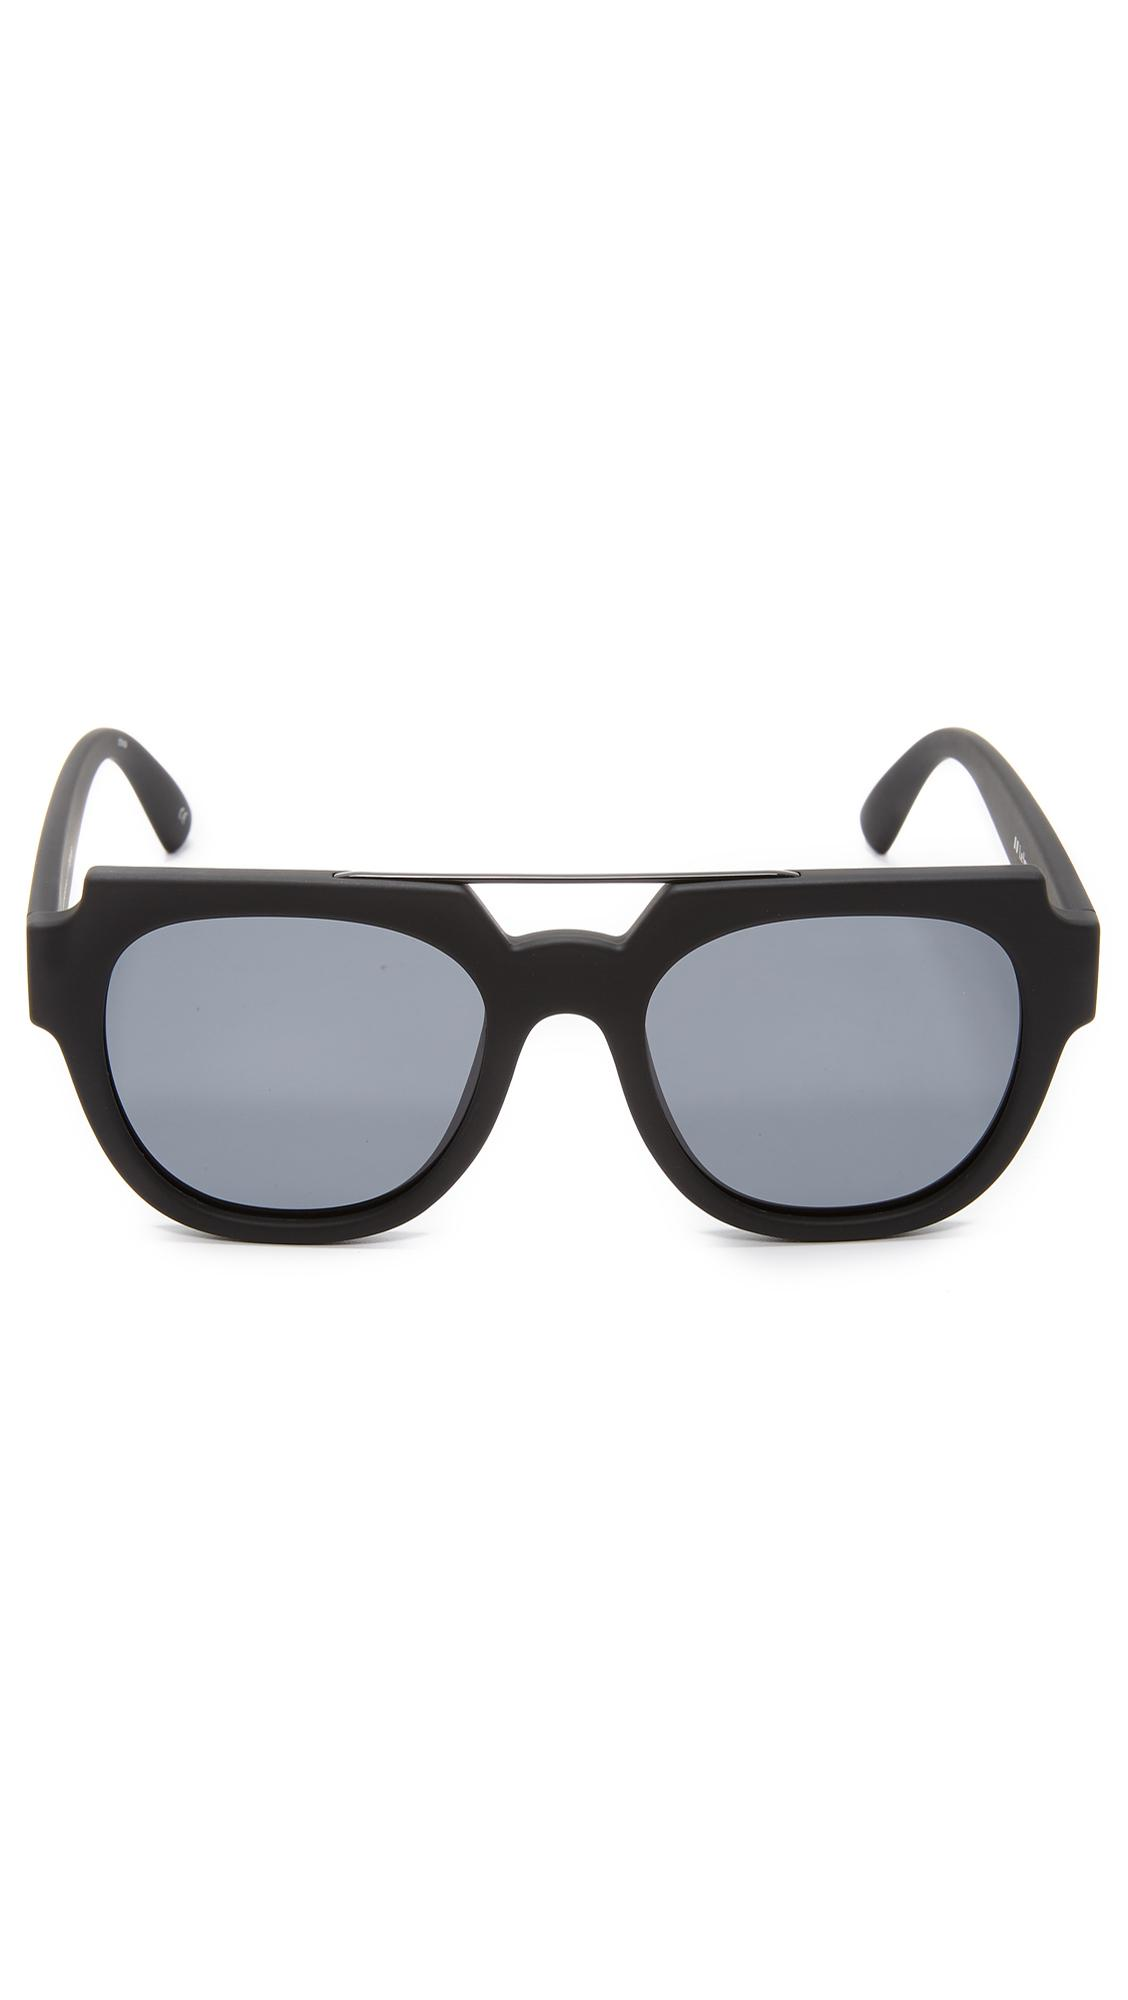 Le Specs La Habana Sunglasses in Black for Men